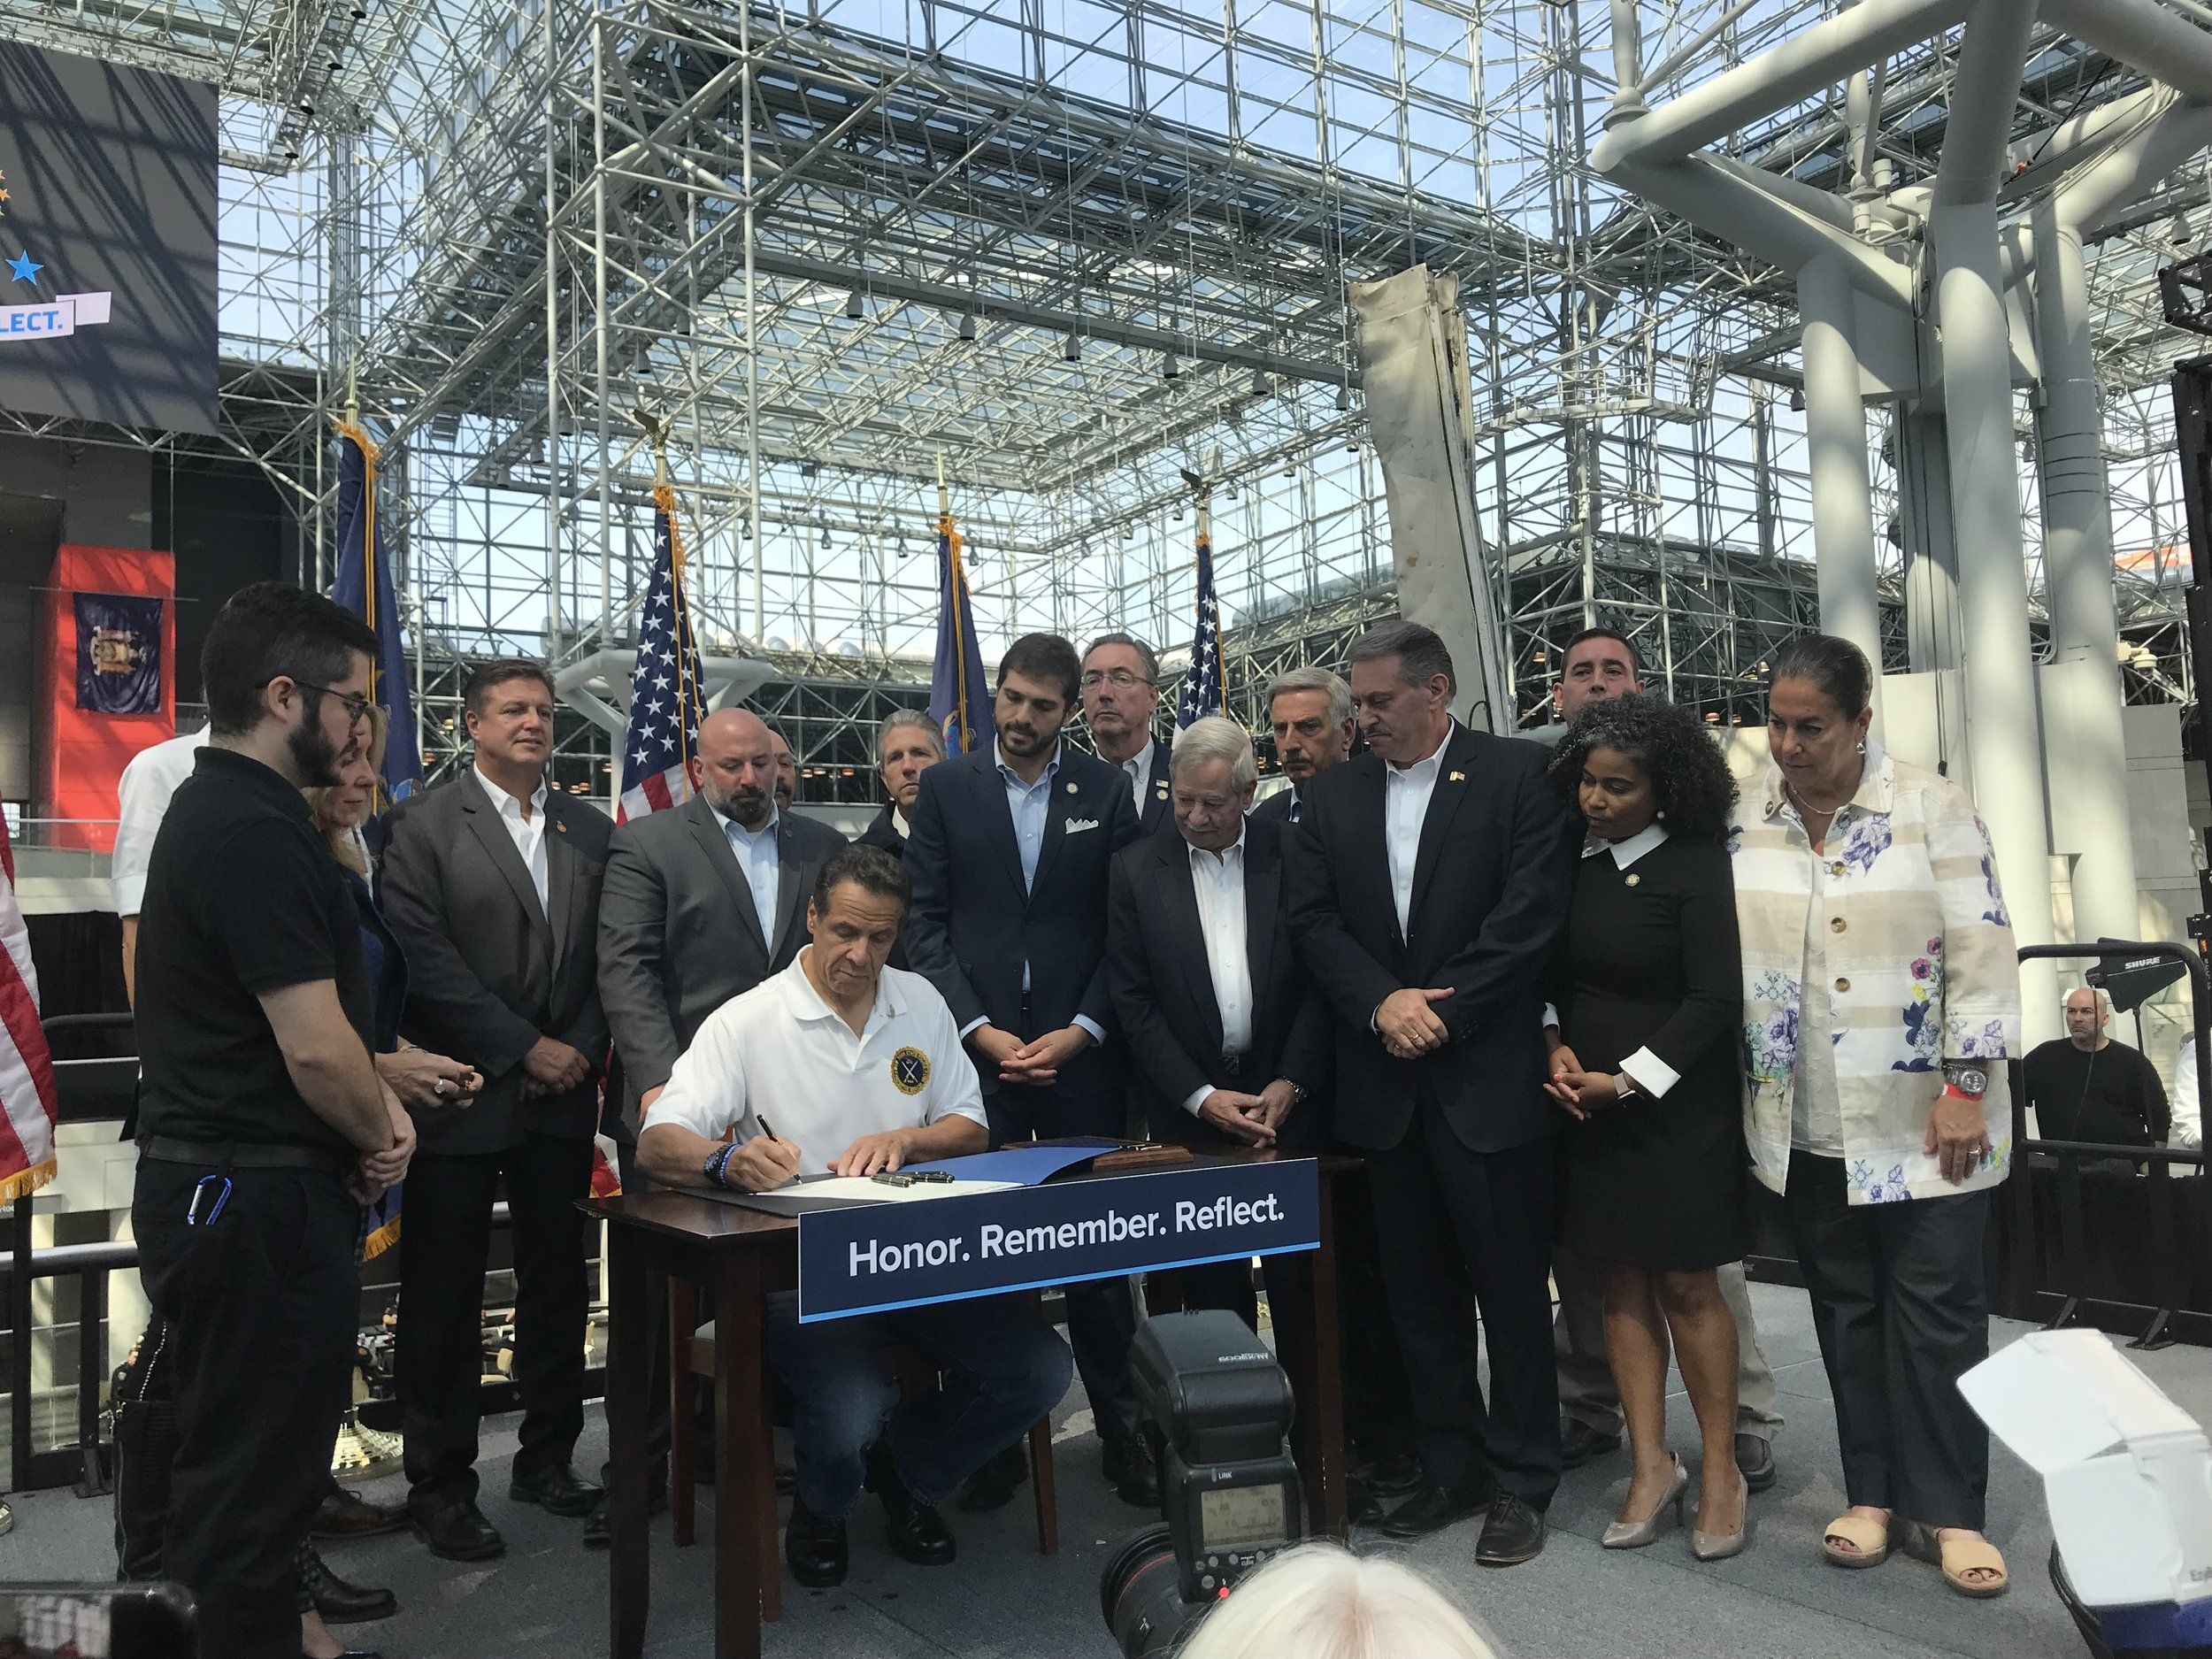 Gov. Andrew Cuomo signs a package of bills to help first responders and civilian employees alongside Assemblymember David Weprin and Stacey Pheffer Amato, State Sens. Joseph Addabbo, Andrew Gounardes, James Gaughran, Assemblymembers Peter Abbate Jr. and Karin Reyes. Photo courtesy of Weprin's Office.